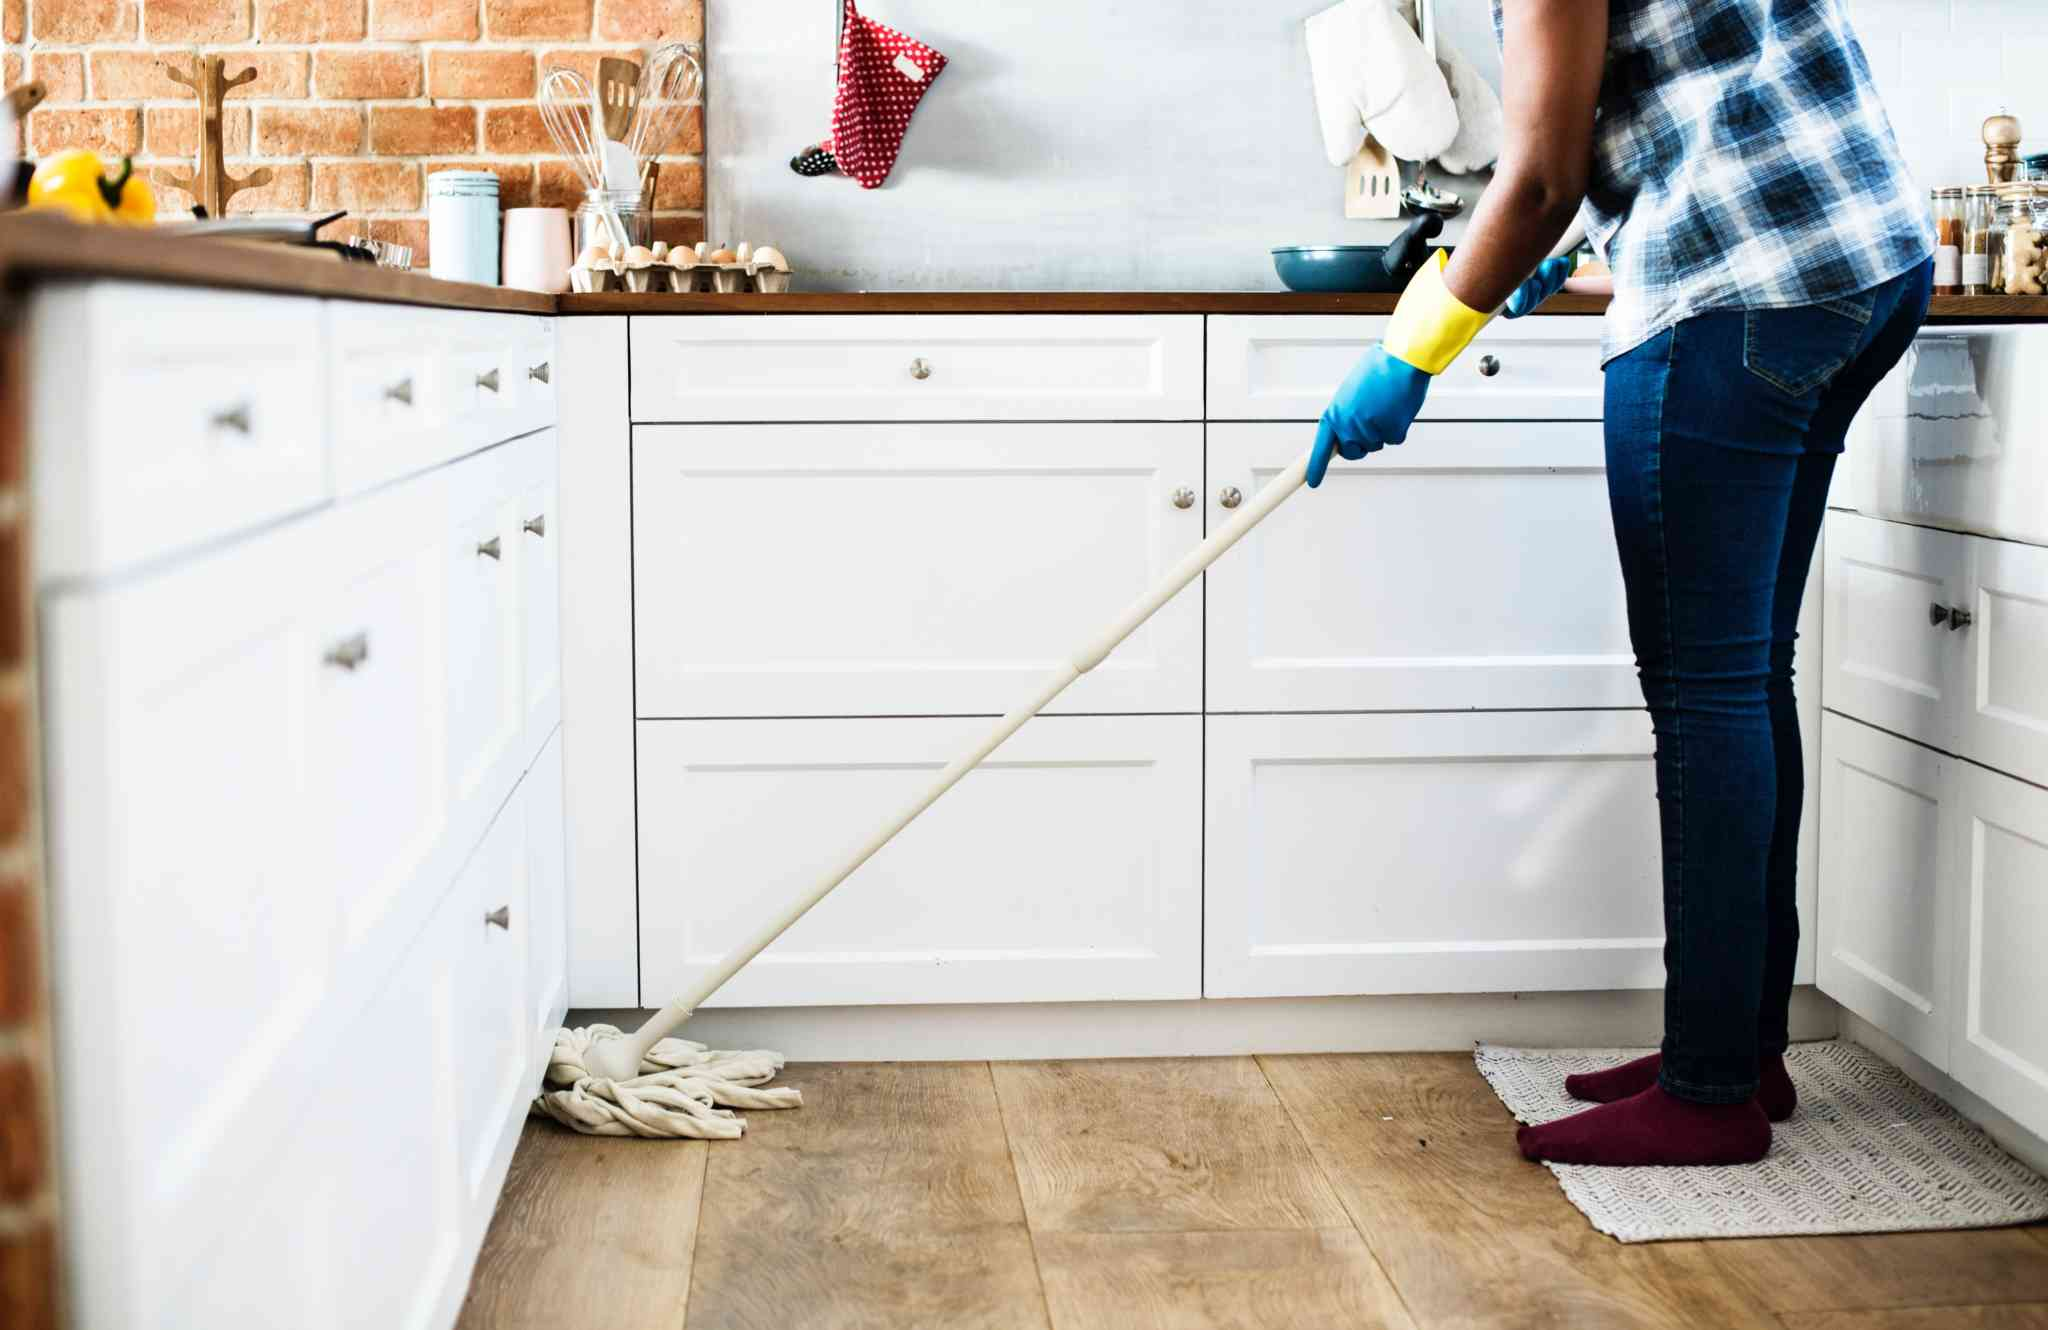 Check out our guide to cleaning your apartment when moving in or out.